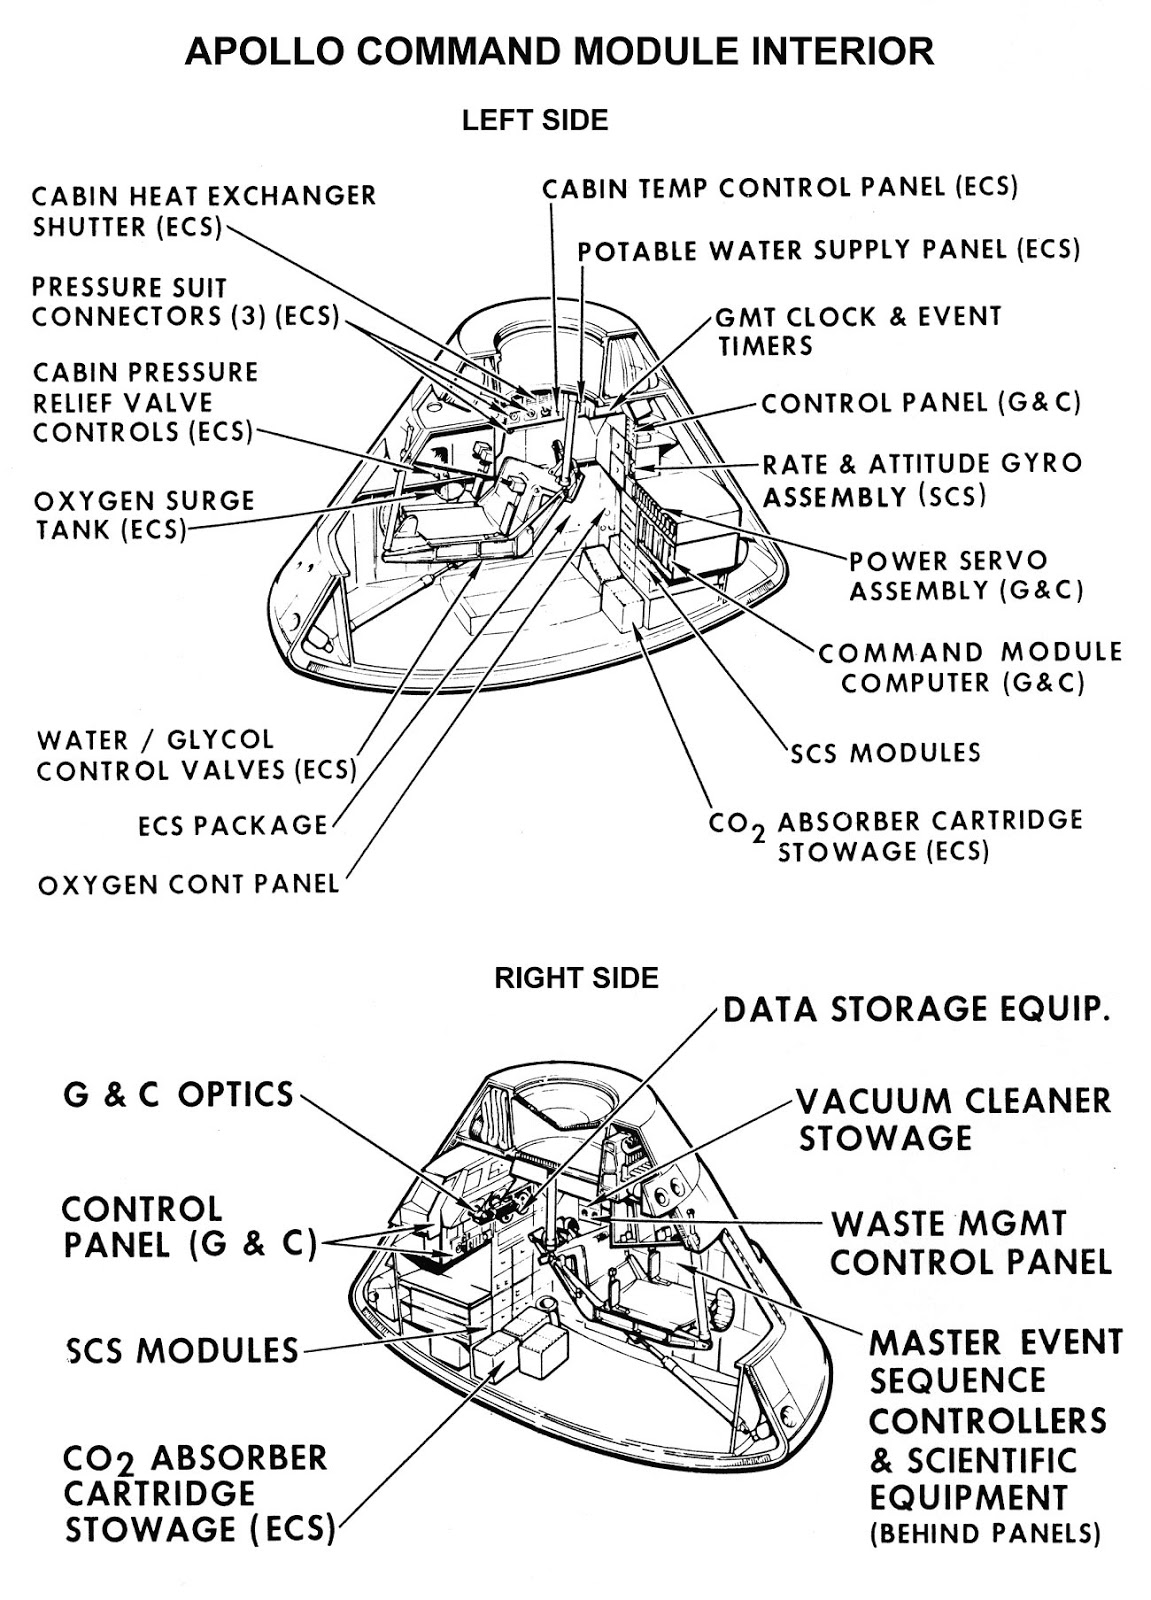 Exo Cruiser Cm Command Module Part 11 Apollo Control